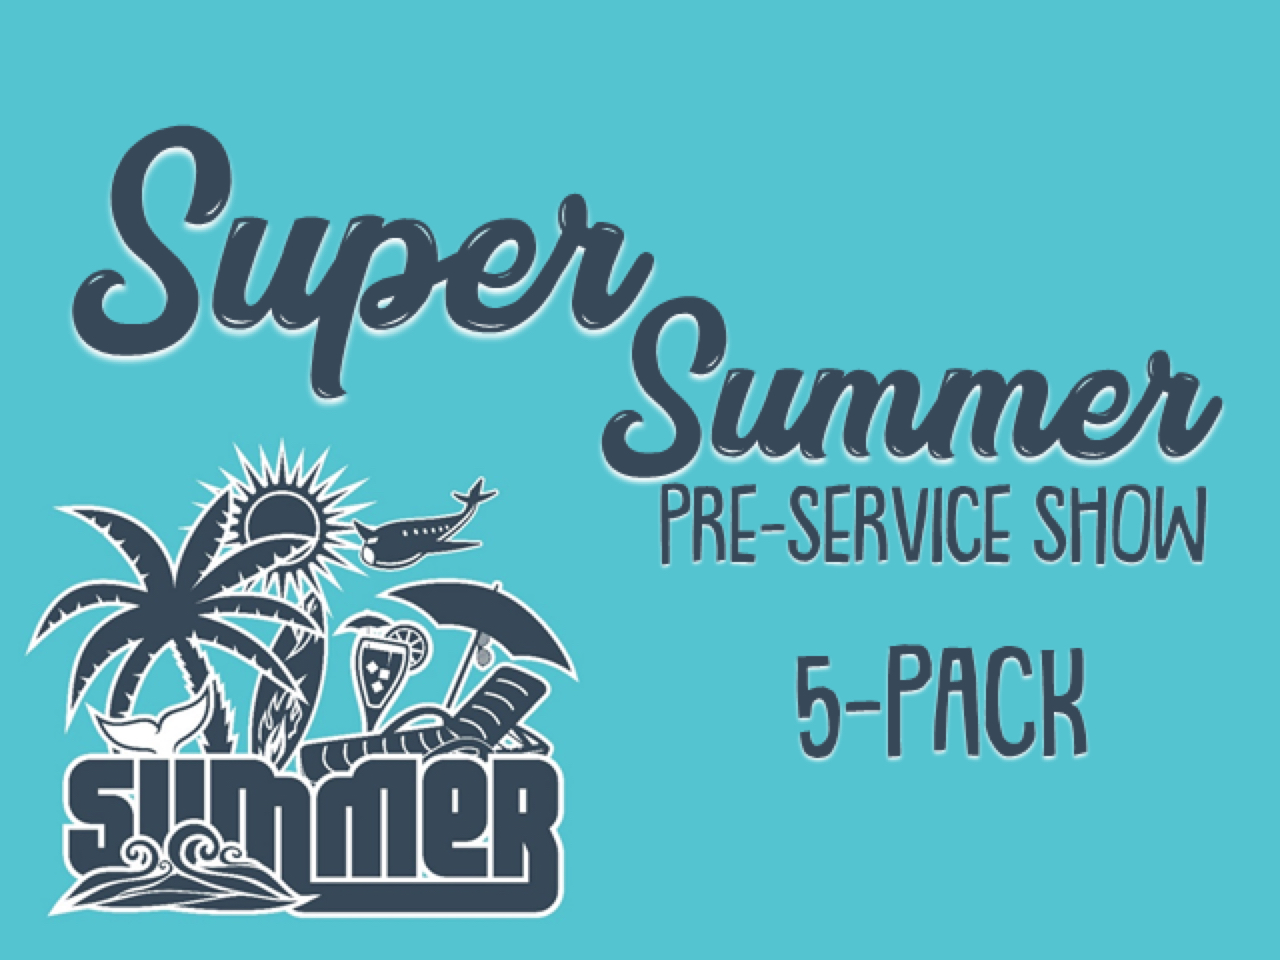 SUPER SUMMER PRESERVICE SHOW 5 PACK